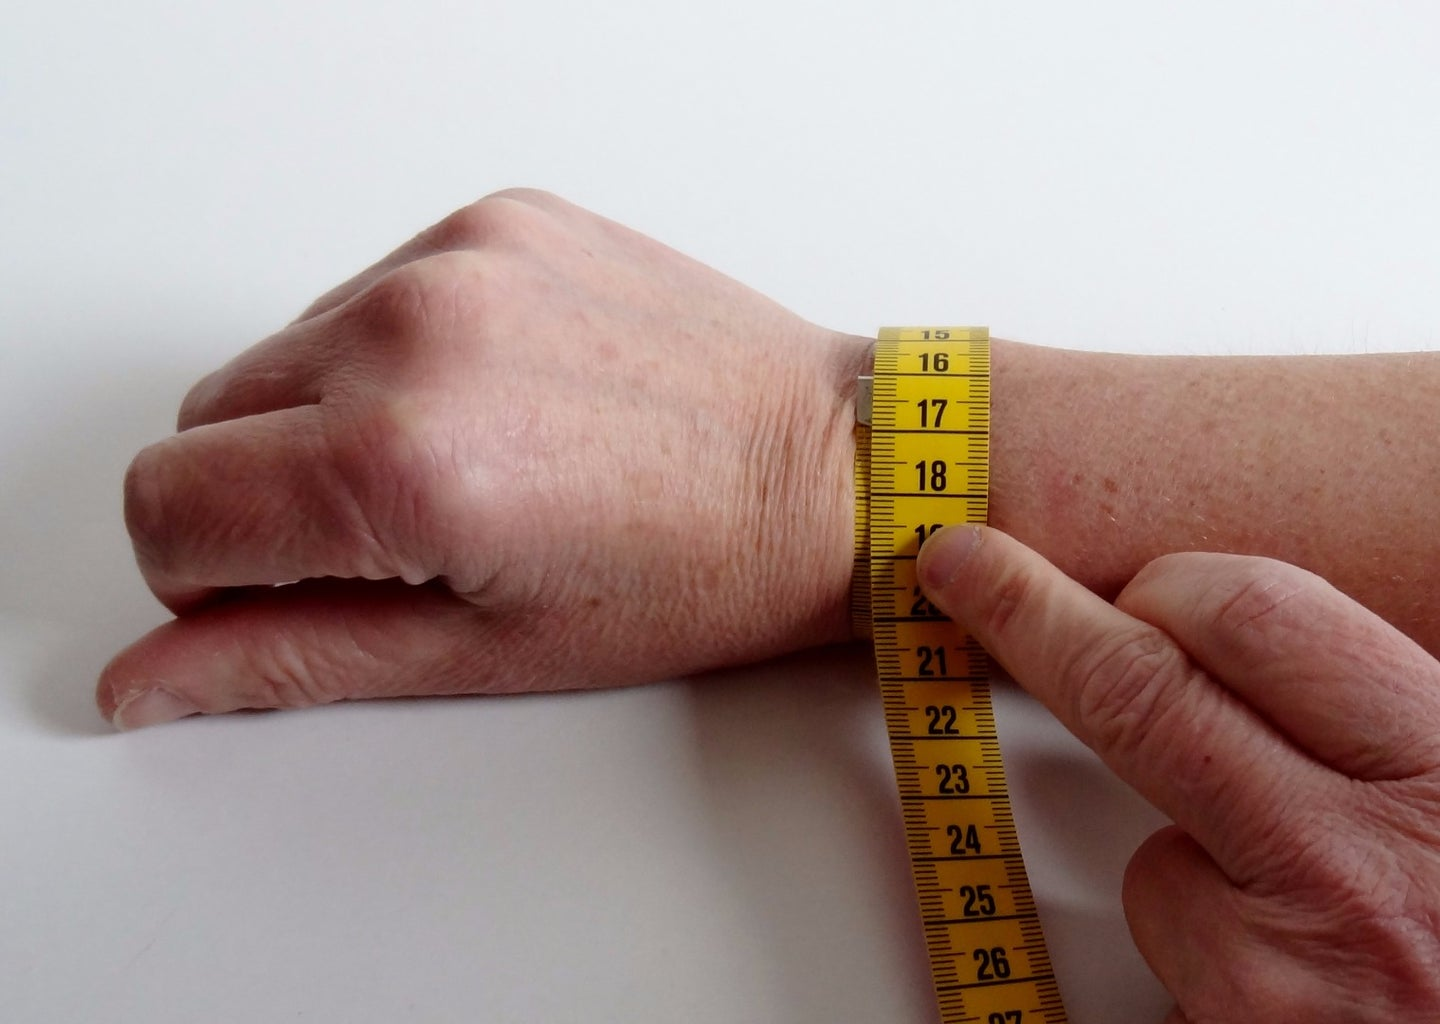 Measure the Size of Your Wrist